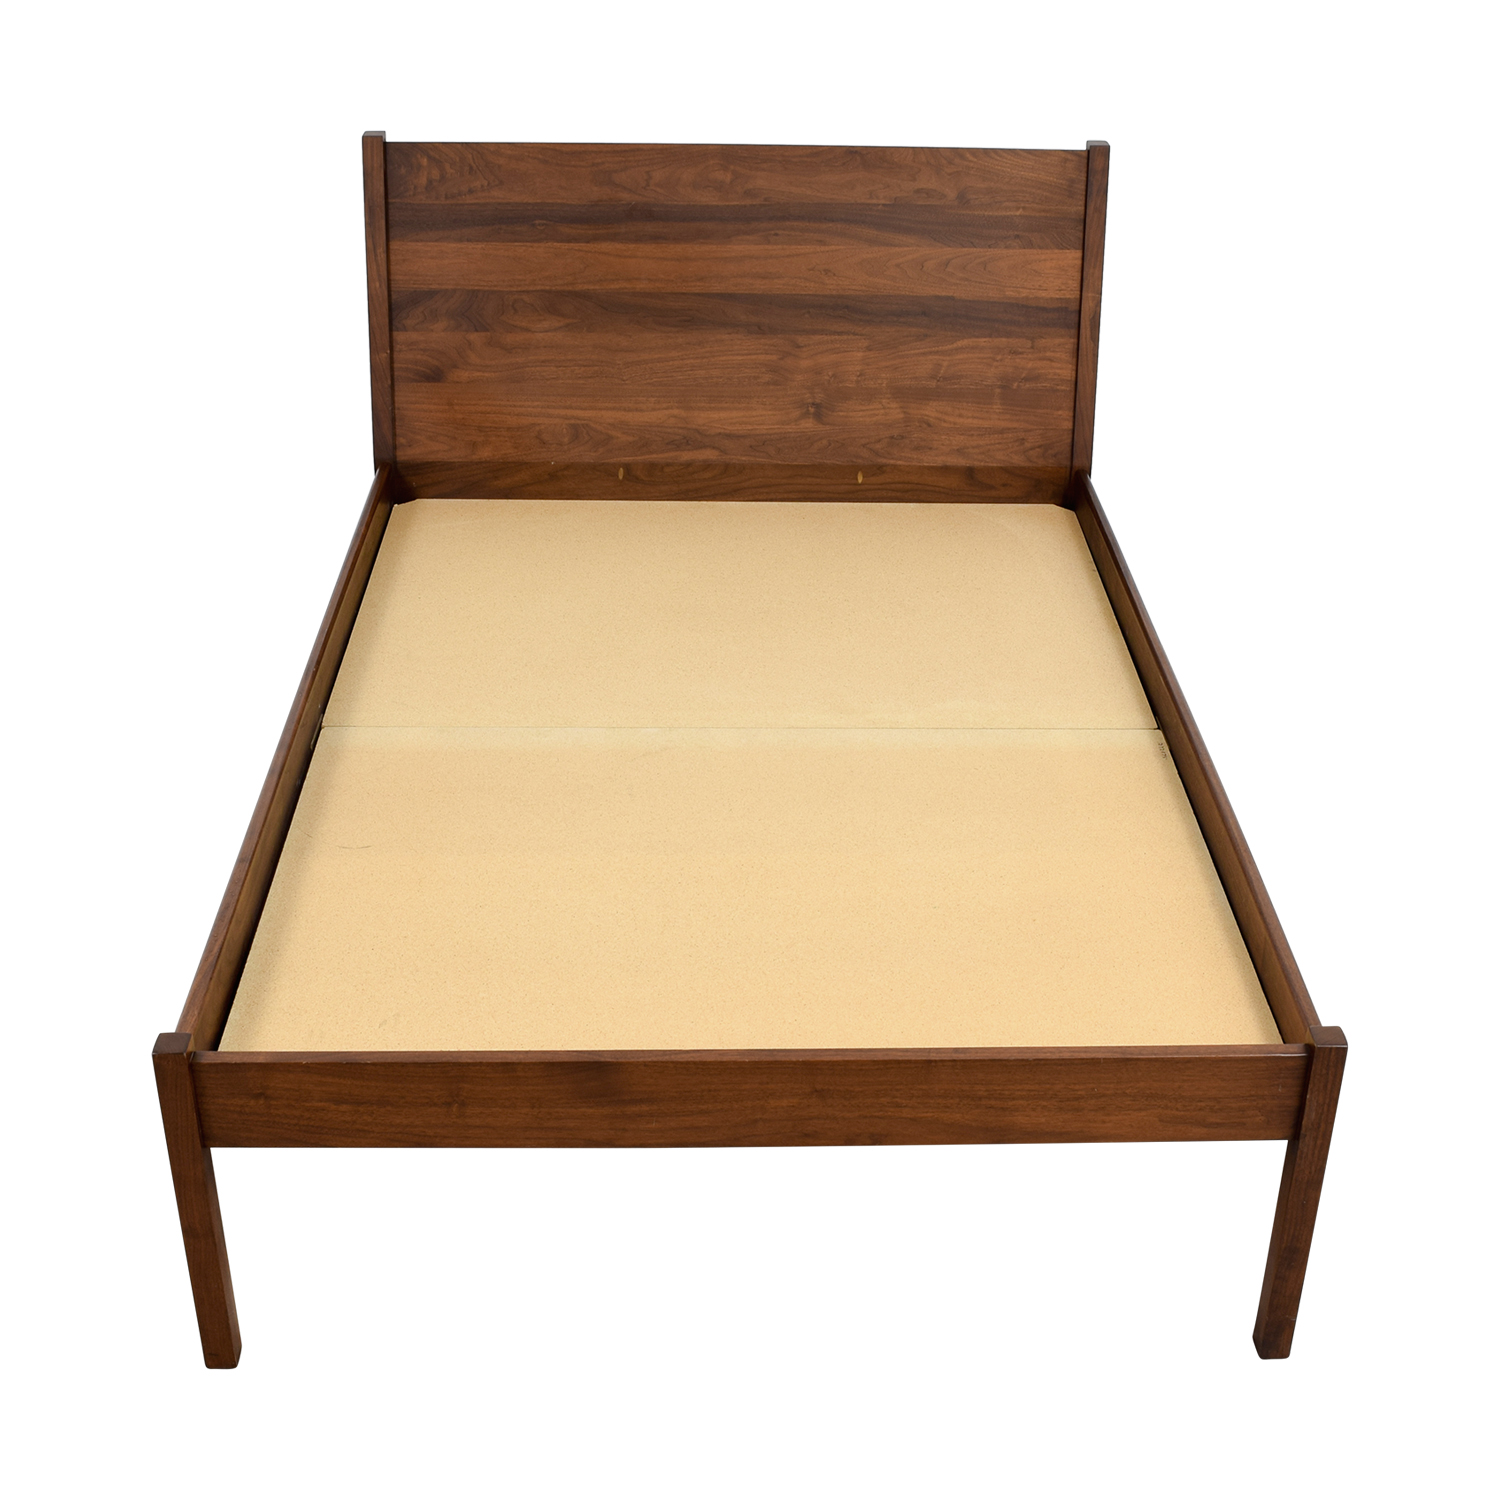 buy Custom Wood Platform Full Bed Frame online